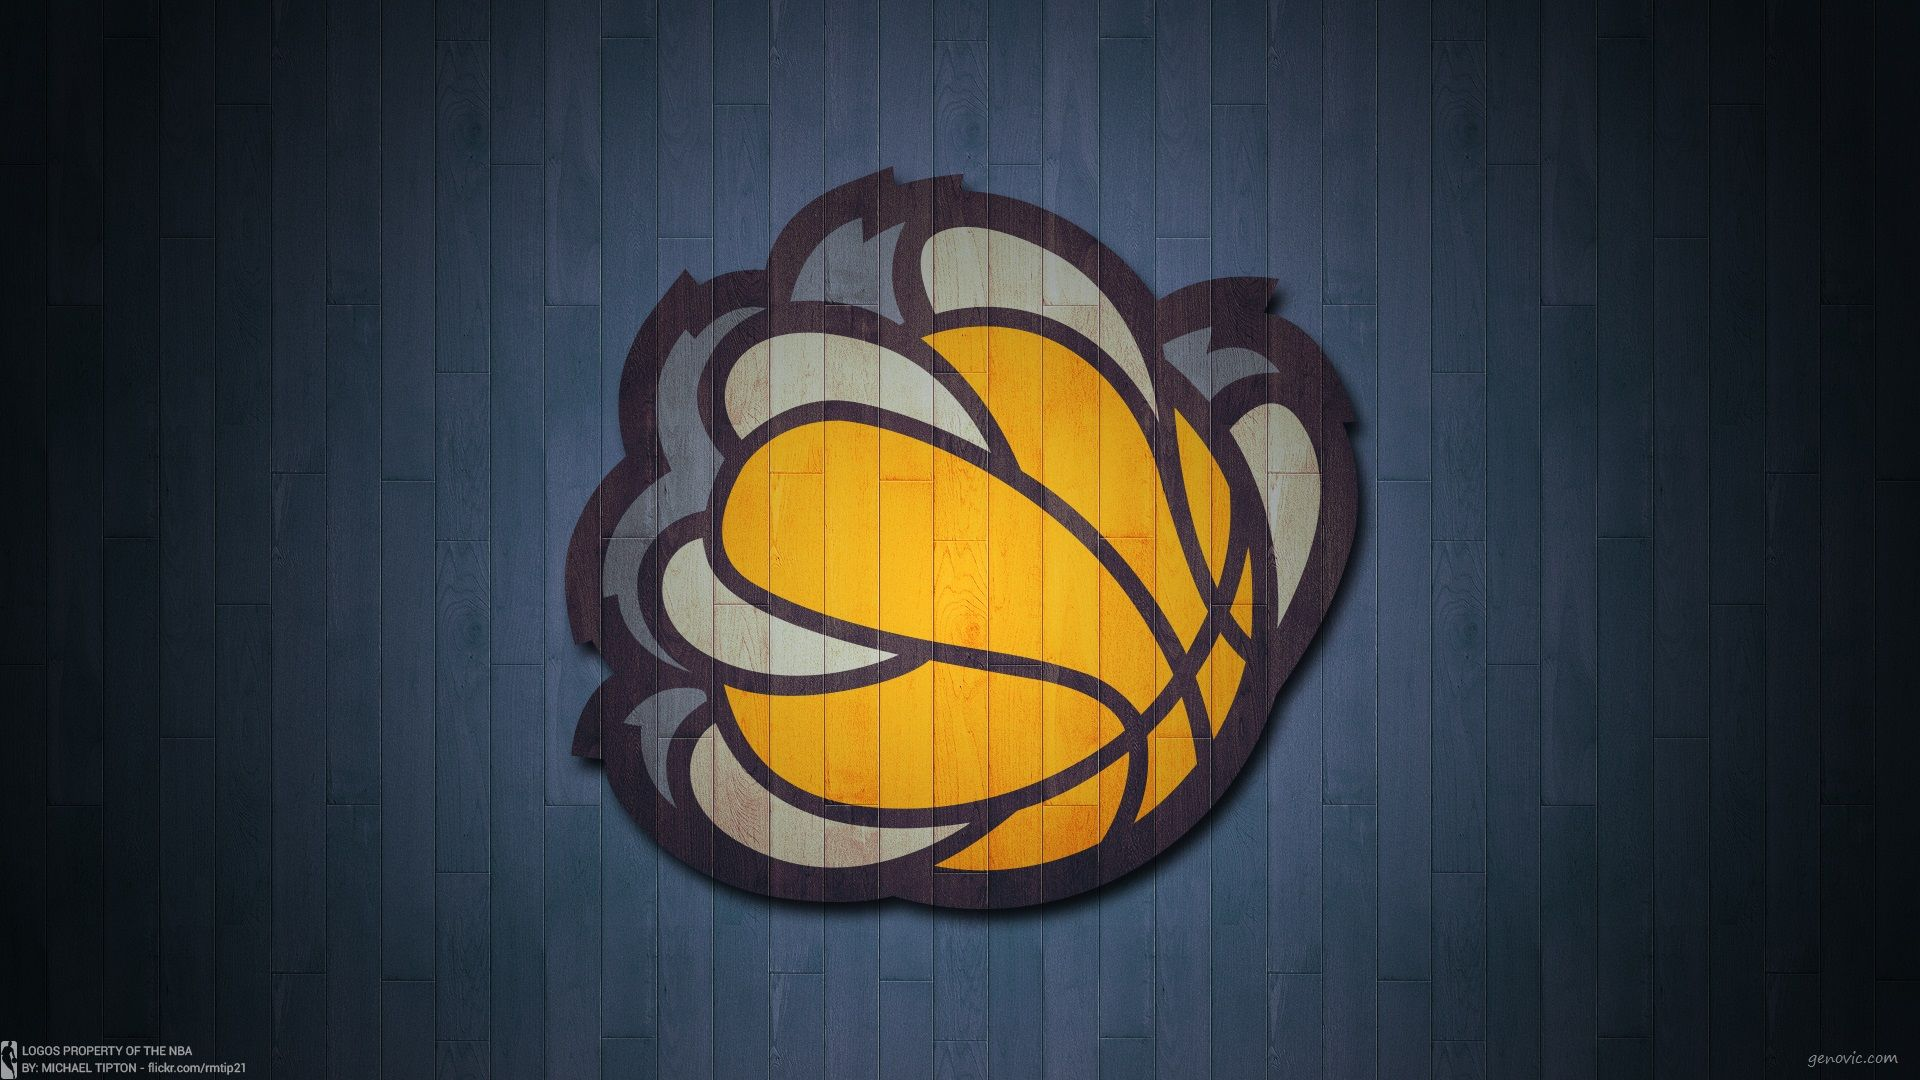 memphis grizzlies 2 android wallpaper hd welcome to the grind